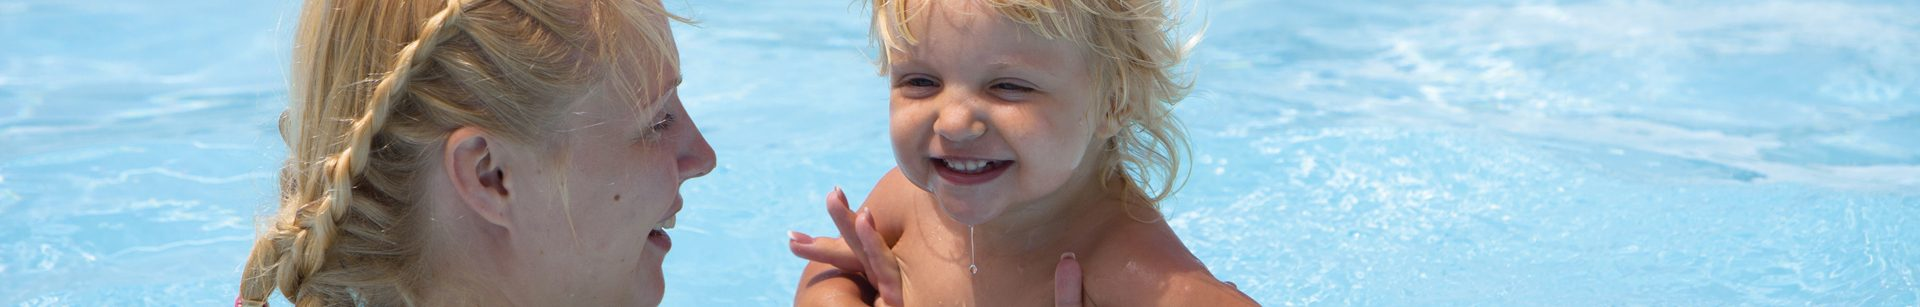 Young child learning to swim.